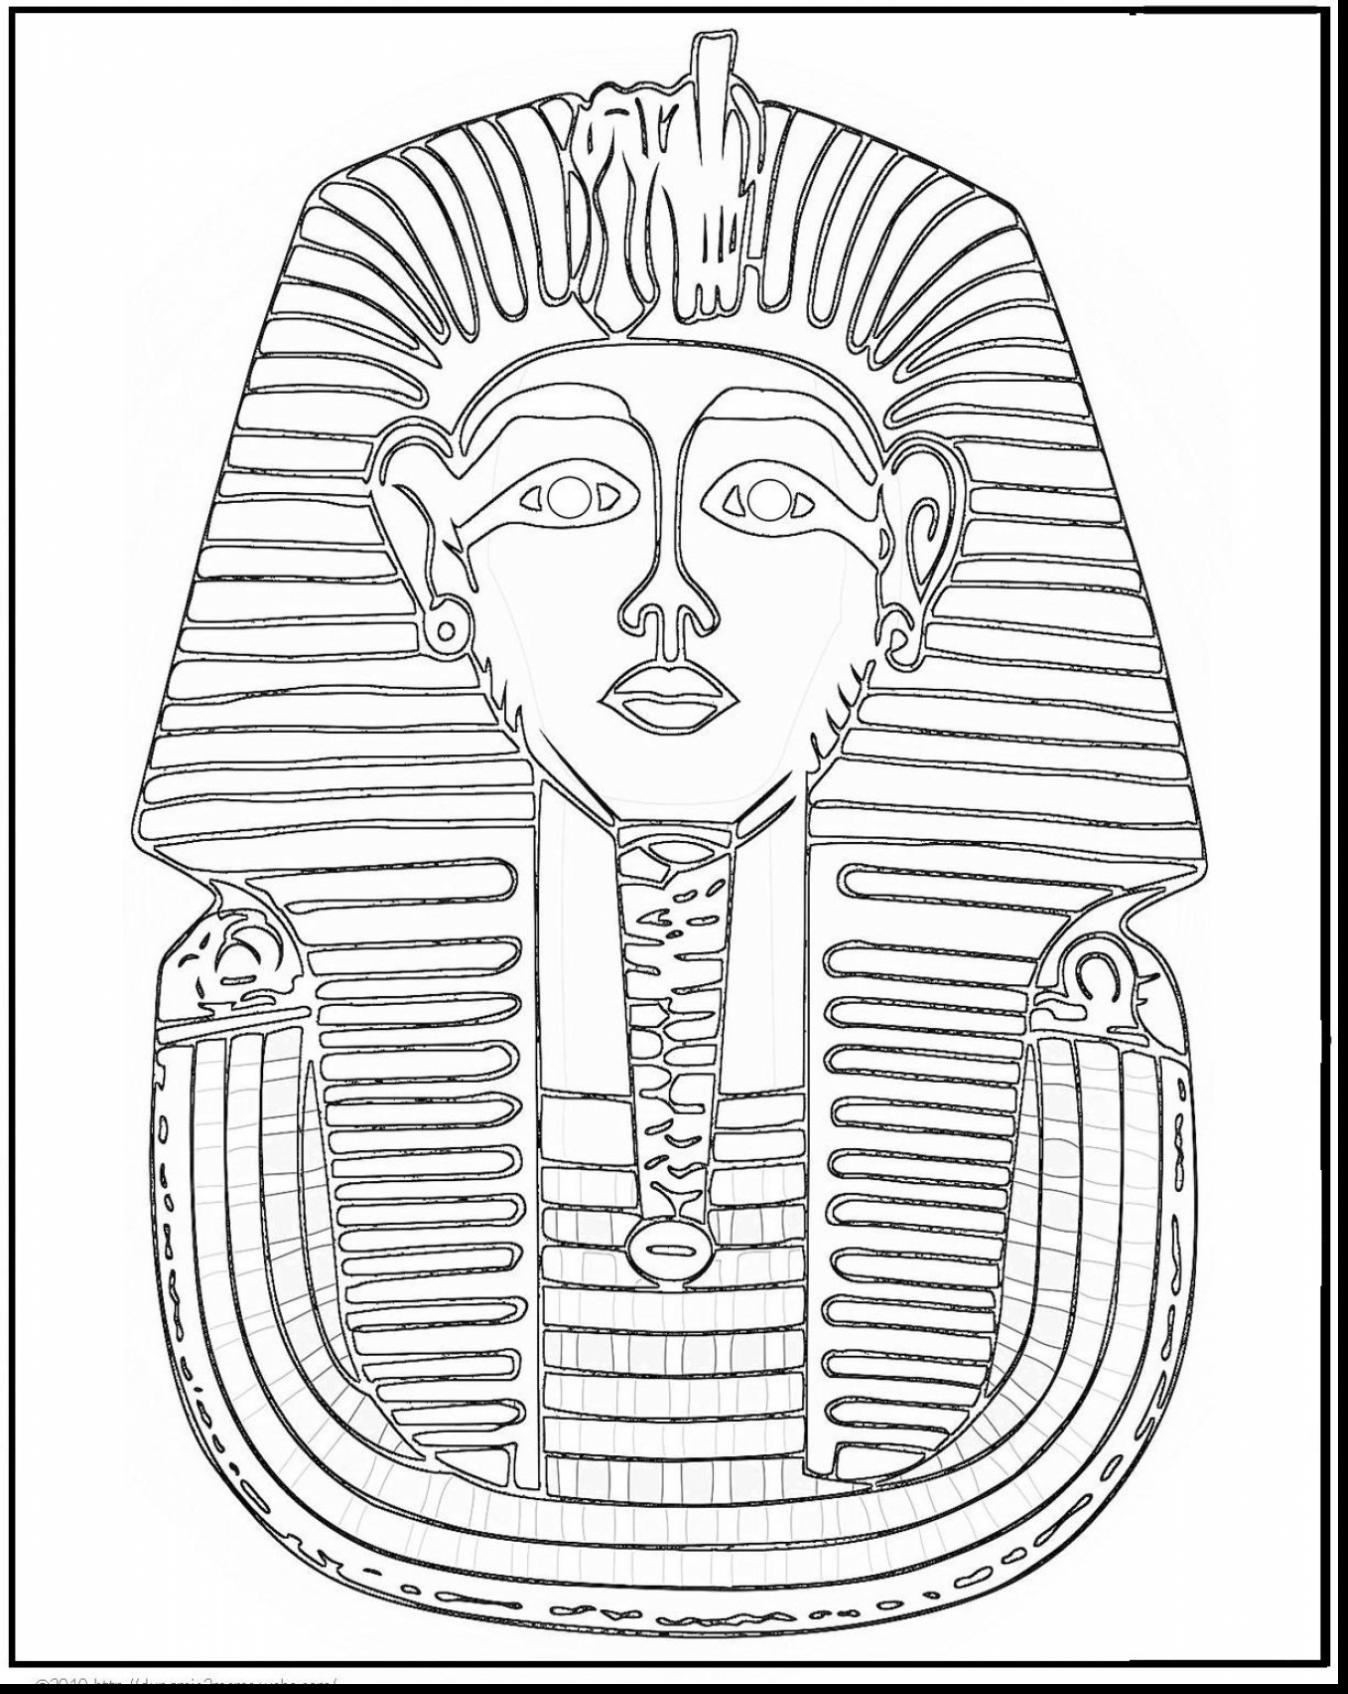 Sphinx Egypt Drawing at GetDrawings.com | Free for personal use ...